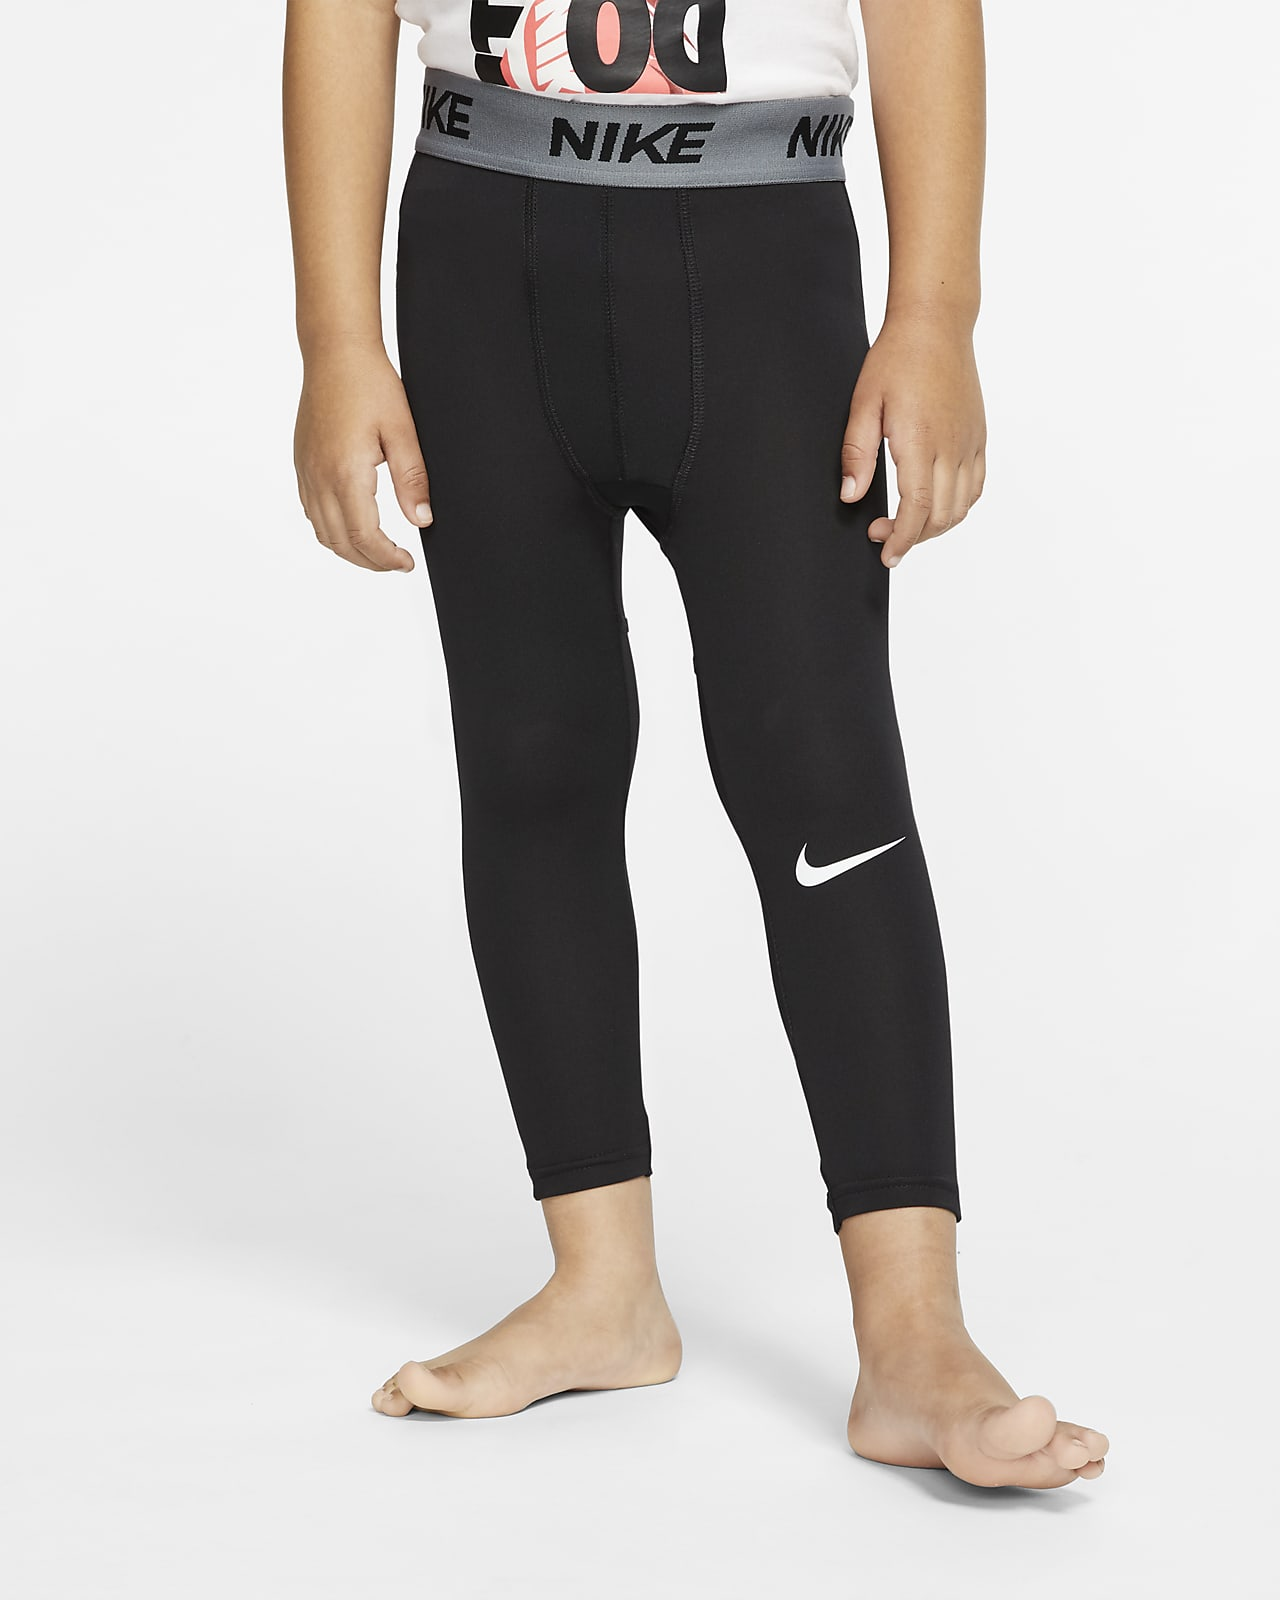 Nike Dri-FIT Toddler Tights